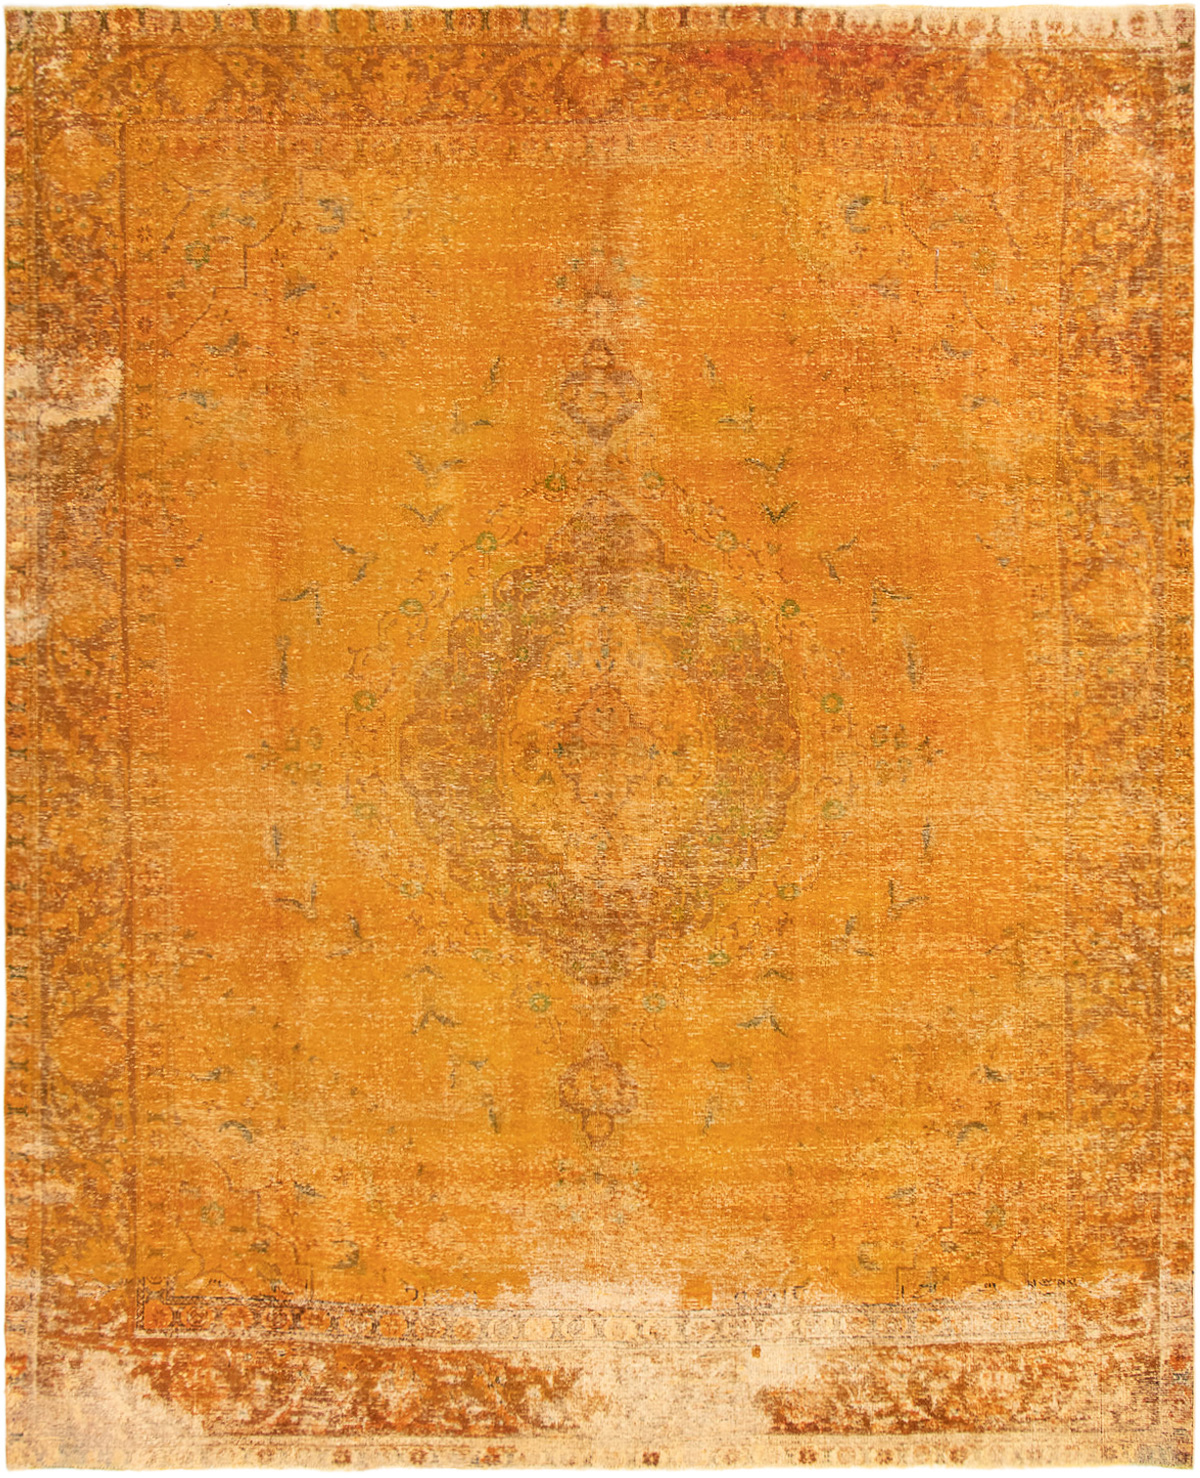 """Hand-knotted Color Transition Light Orange Wool Rug 9'10"""" x 12'0"""" Size: 9'10"""" x 12'0"""""""